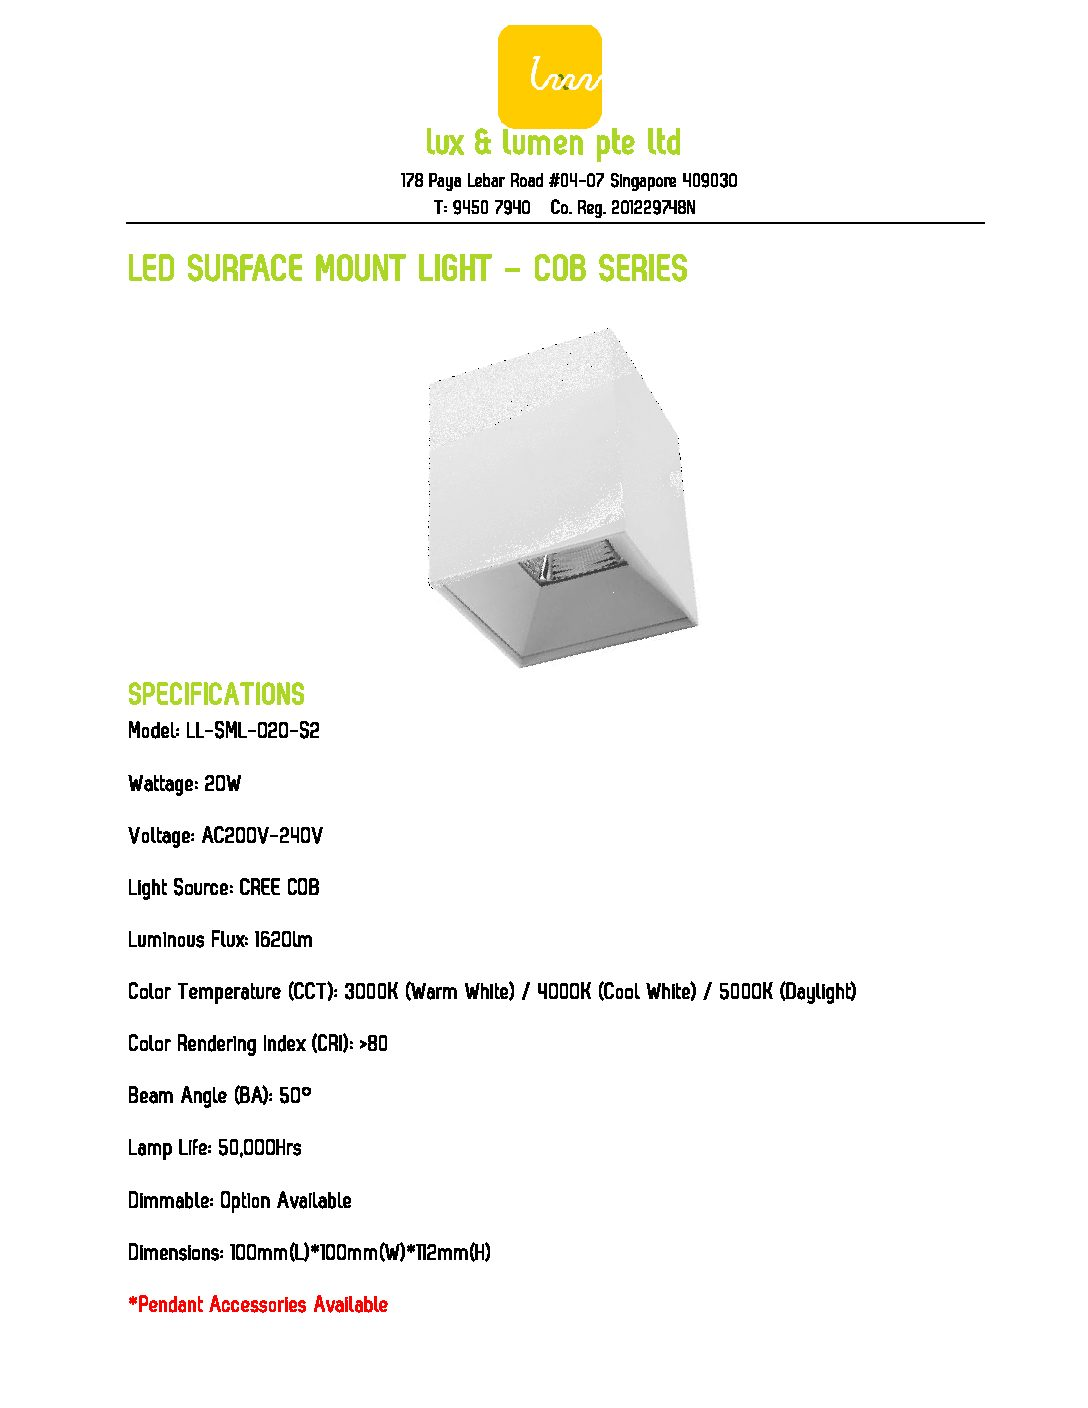 LED Surface Mount Light COB Series S020